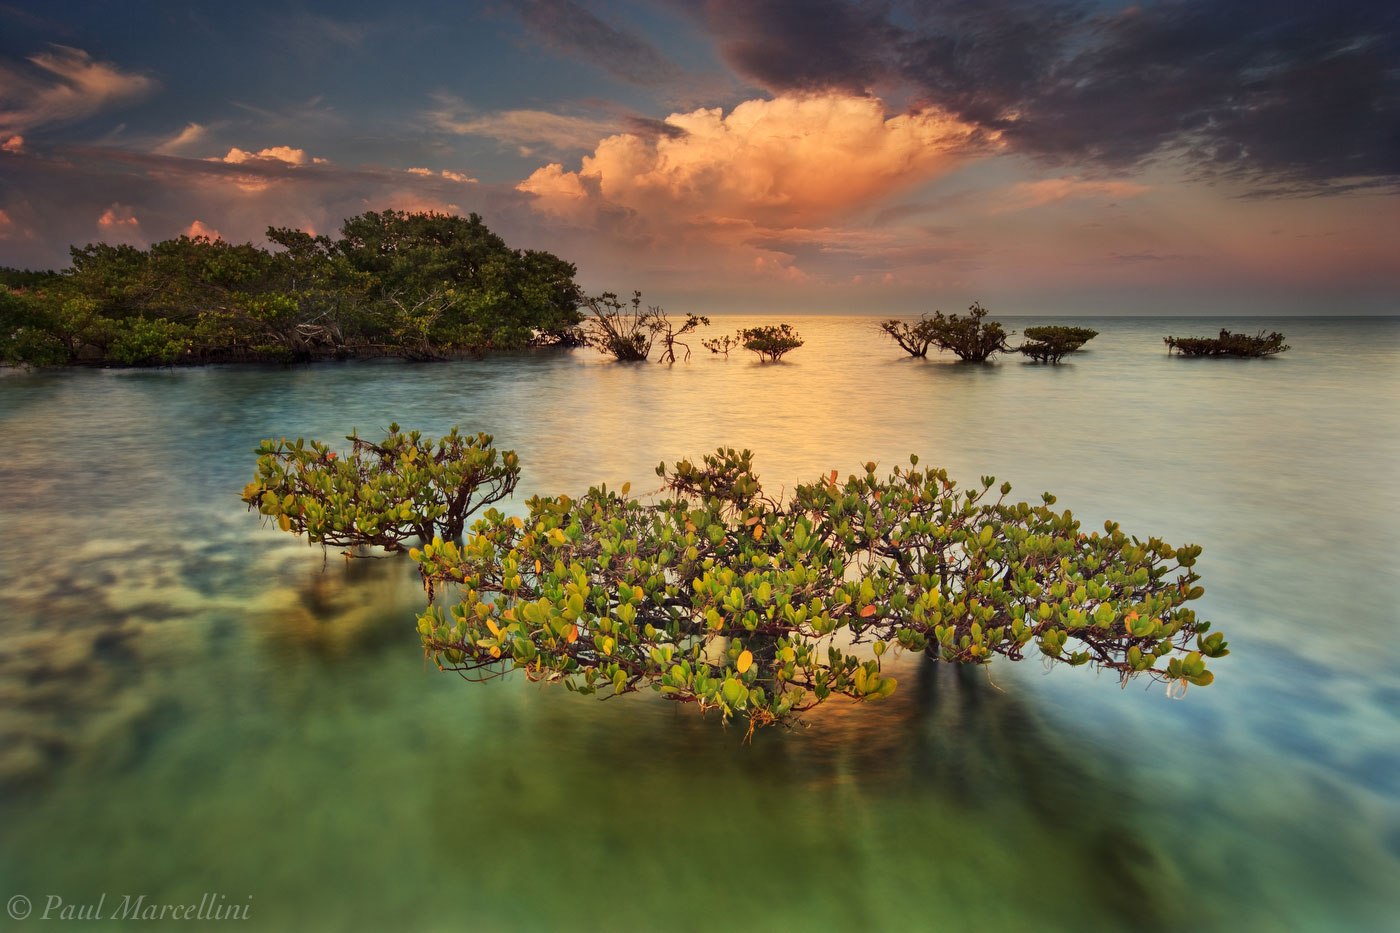 mangrove, biscayne national park, sunset, thunderstorm, atlantic ocean, awarded, florida, south florida, nature, photography, photo